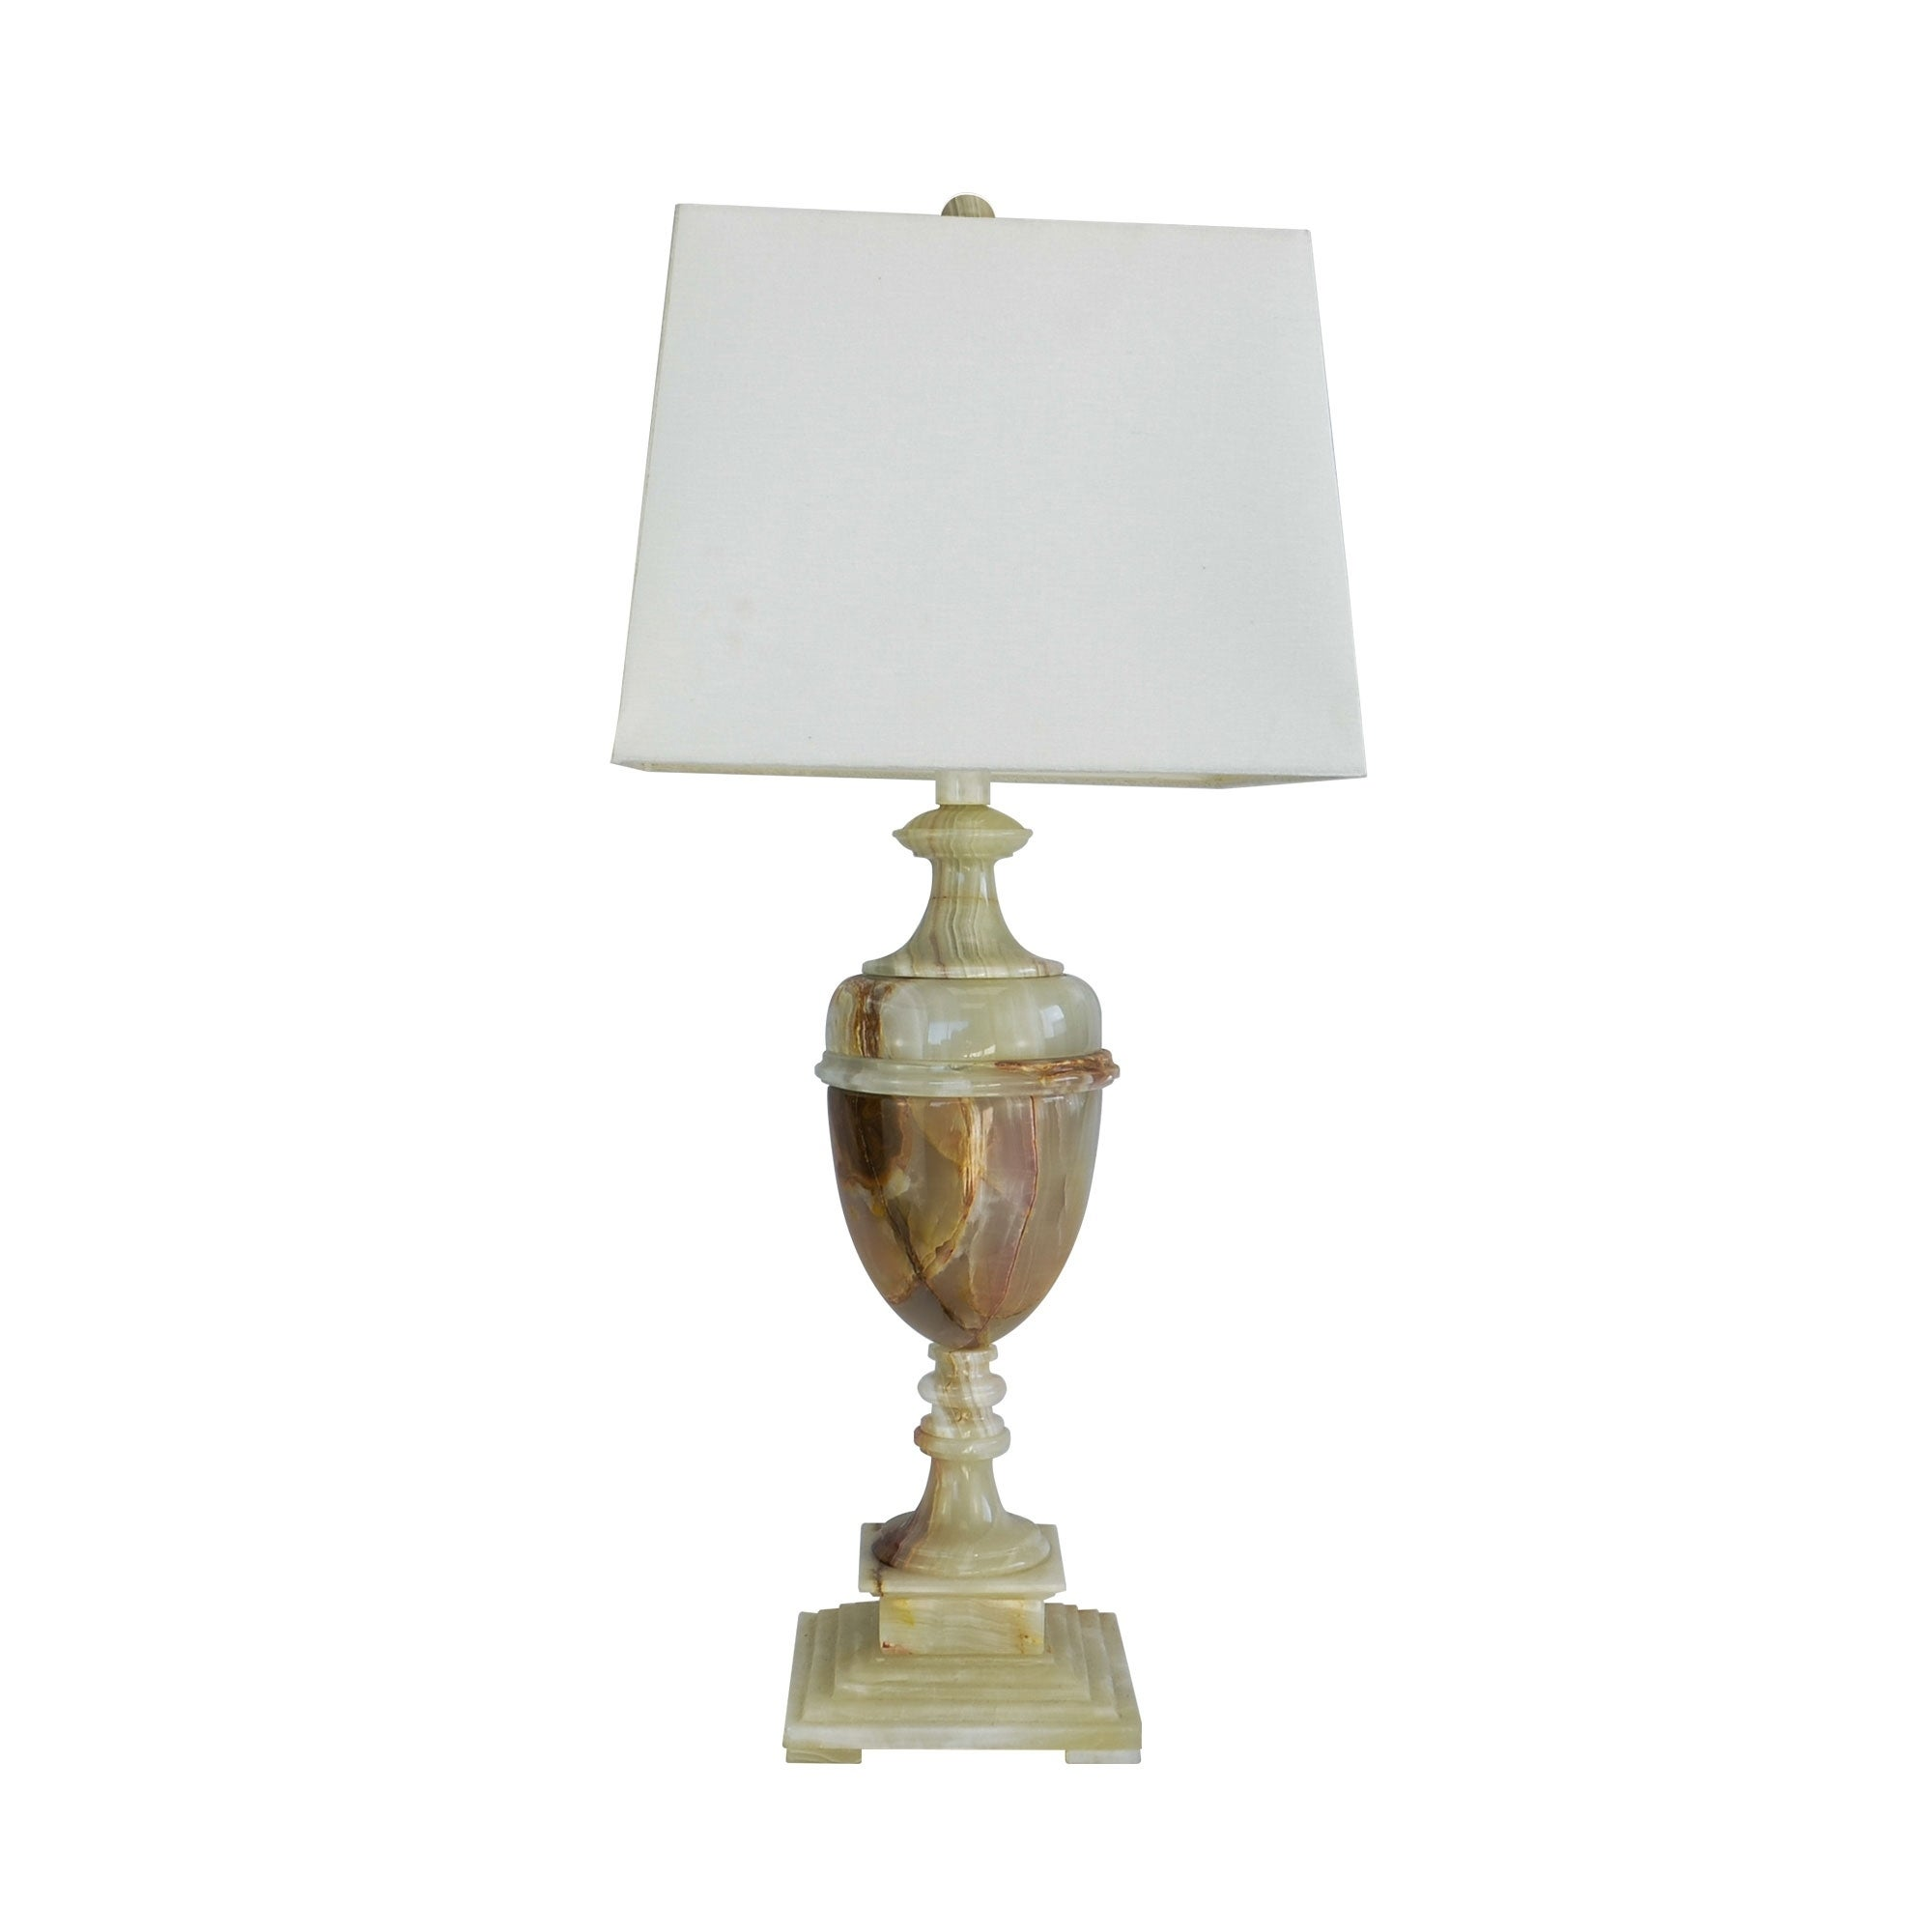 32 Tall Marble Table Lamp Sabrina With Chartreuse Finish White Linen Shade Overstock 19456763